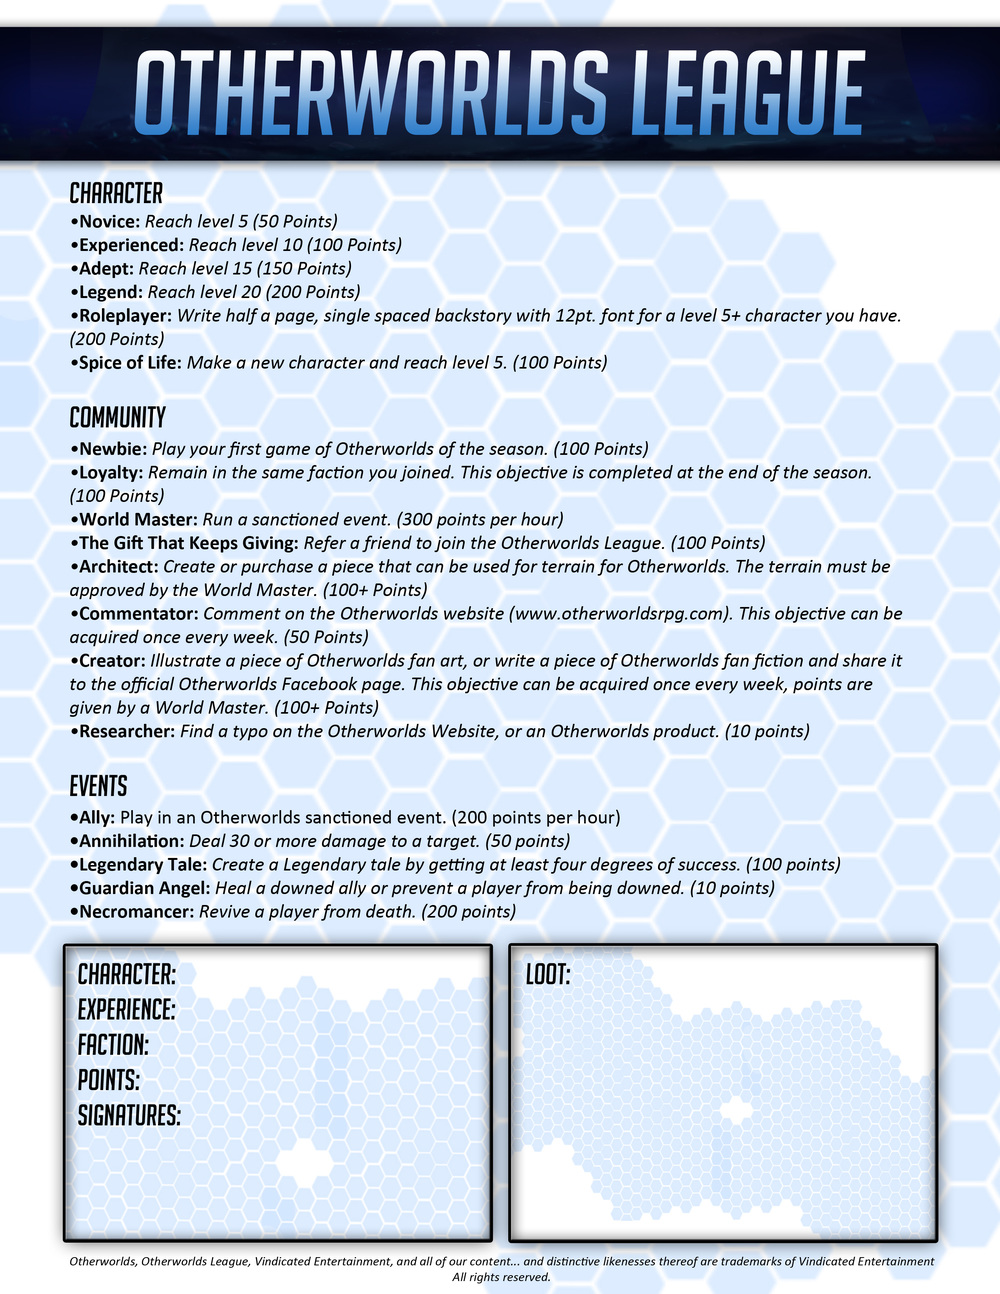 Otherworlds Tabletop RPG League Sheet